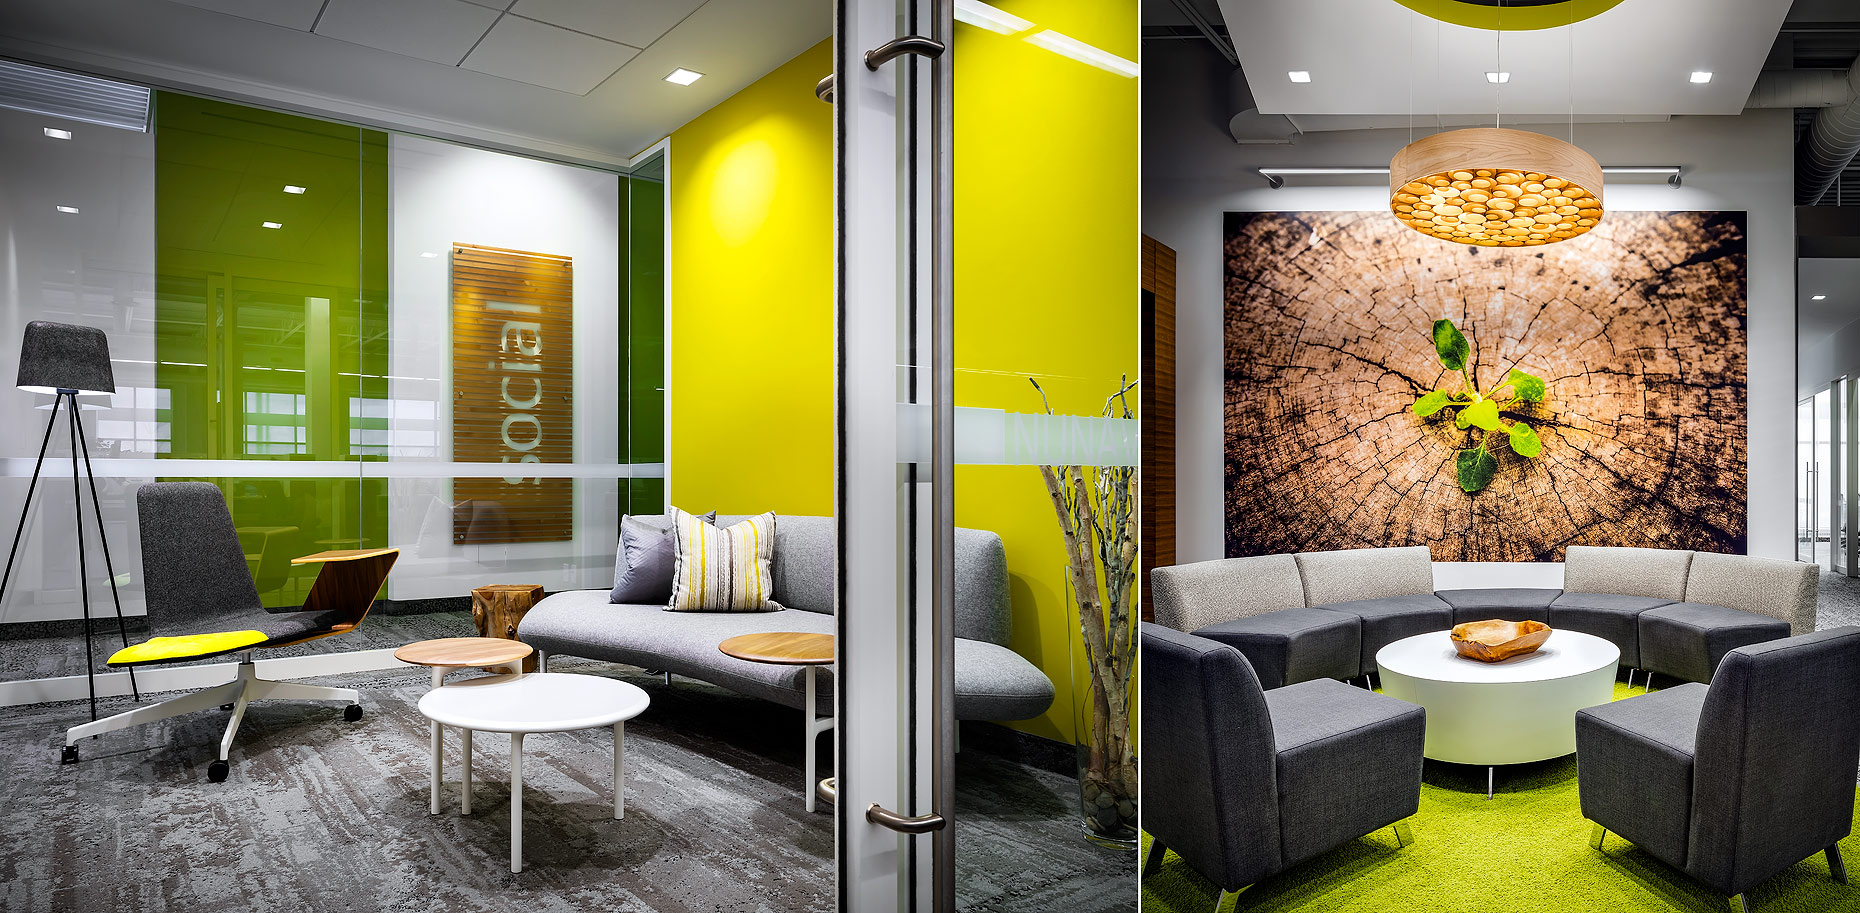 John Deere Head Office Lounge by Comley Van Brussel